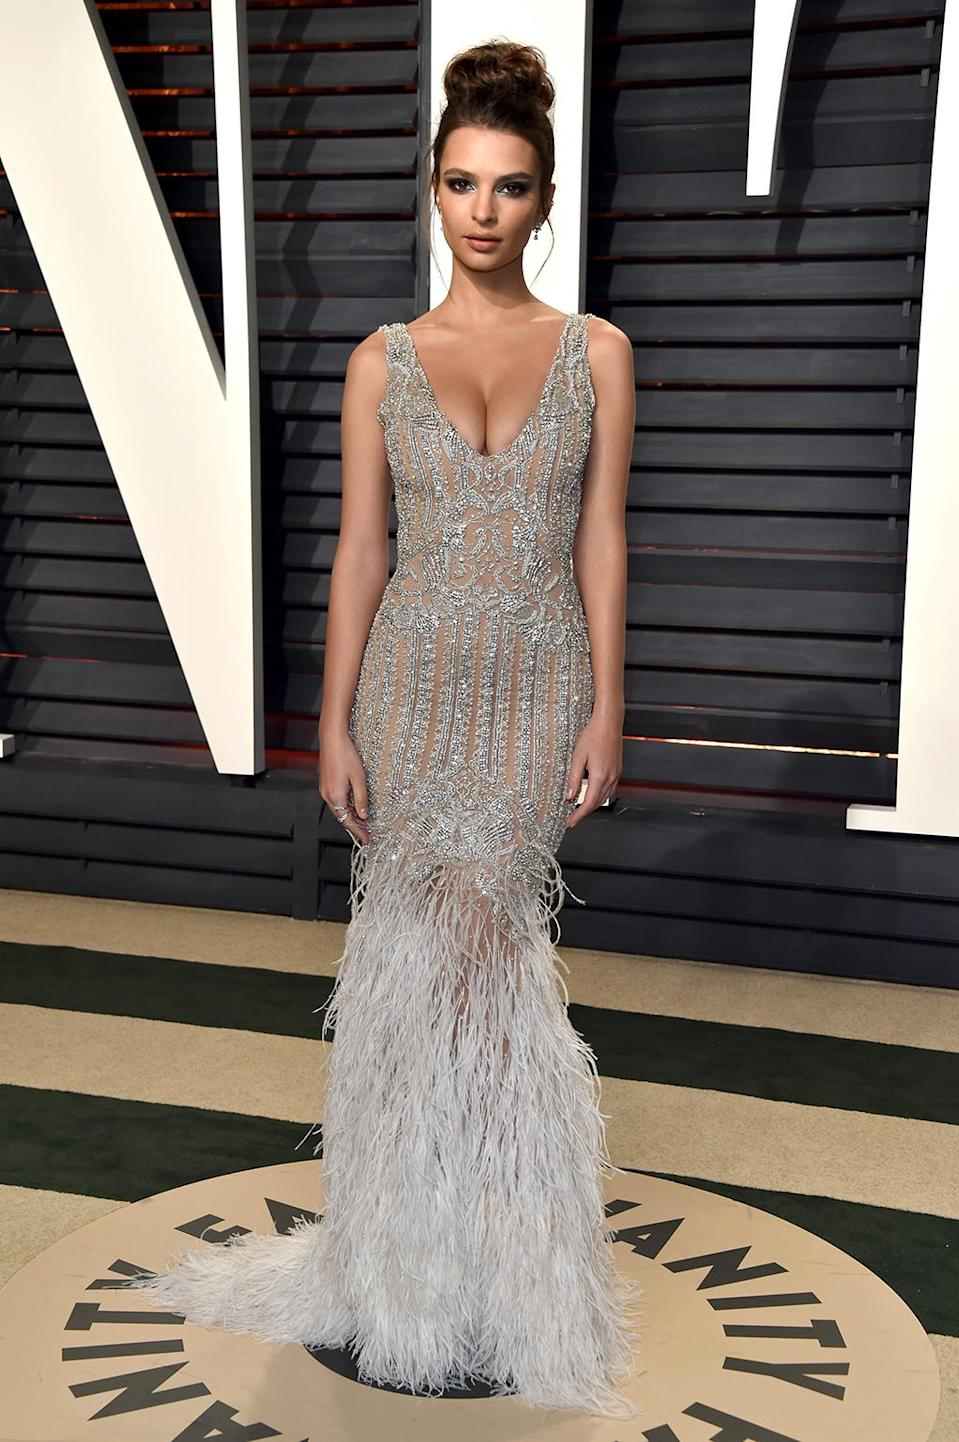 <p>Emily Ratajkowski attends the 2017 Vanity Fair Oscar Party hosted by Graydon Carter at Wallis Annenberg Center for the Performing Arts on February 26, 2017 in Beverly Hills, California. (Photo by Pascal Le Segretain/Getty Images) </p>